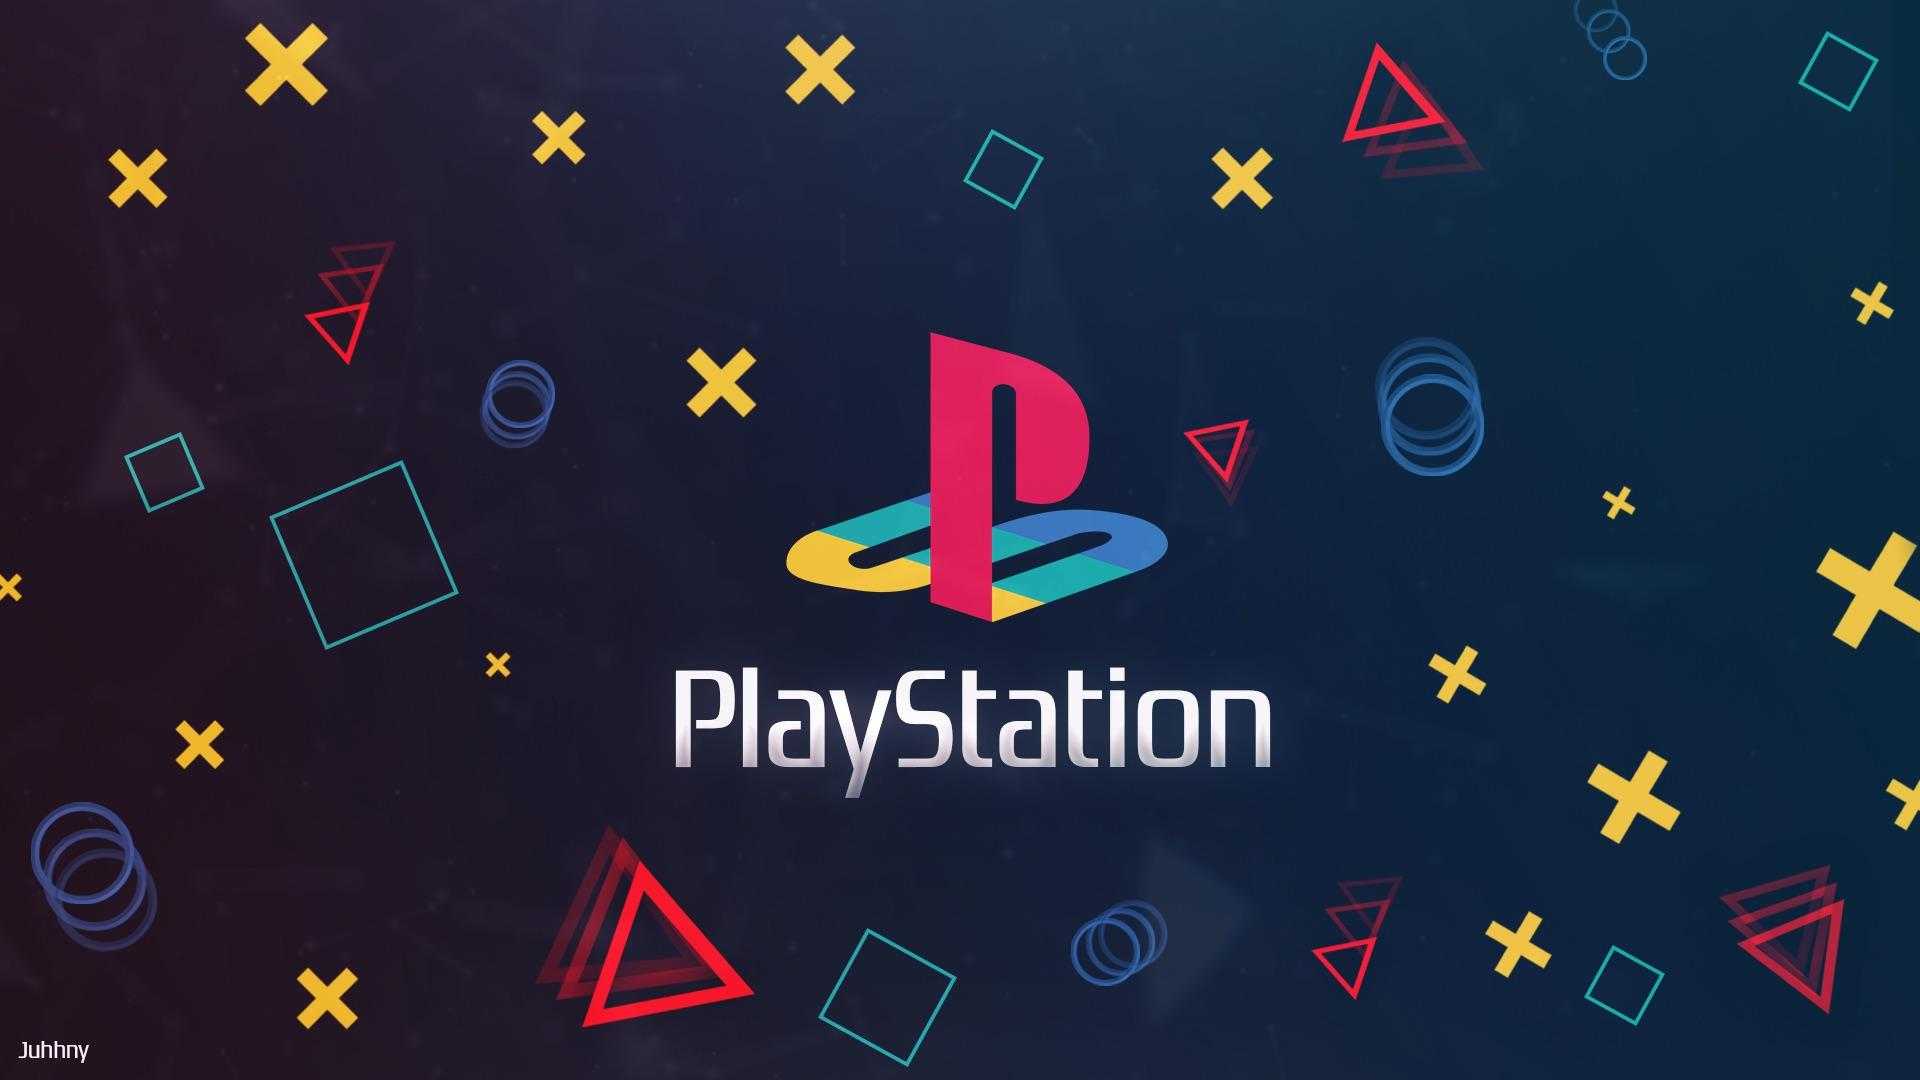 PlayStation Wallpapers Wallpapers   All Superior PlayStation 1920x1080